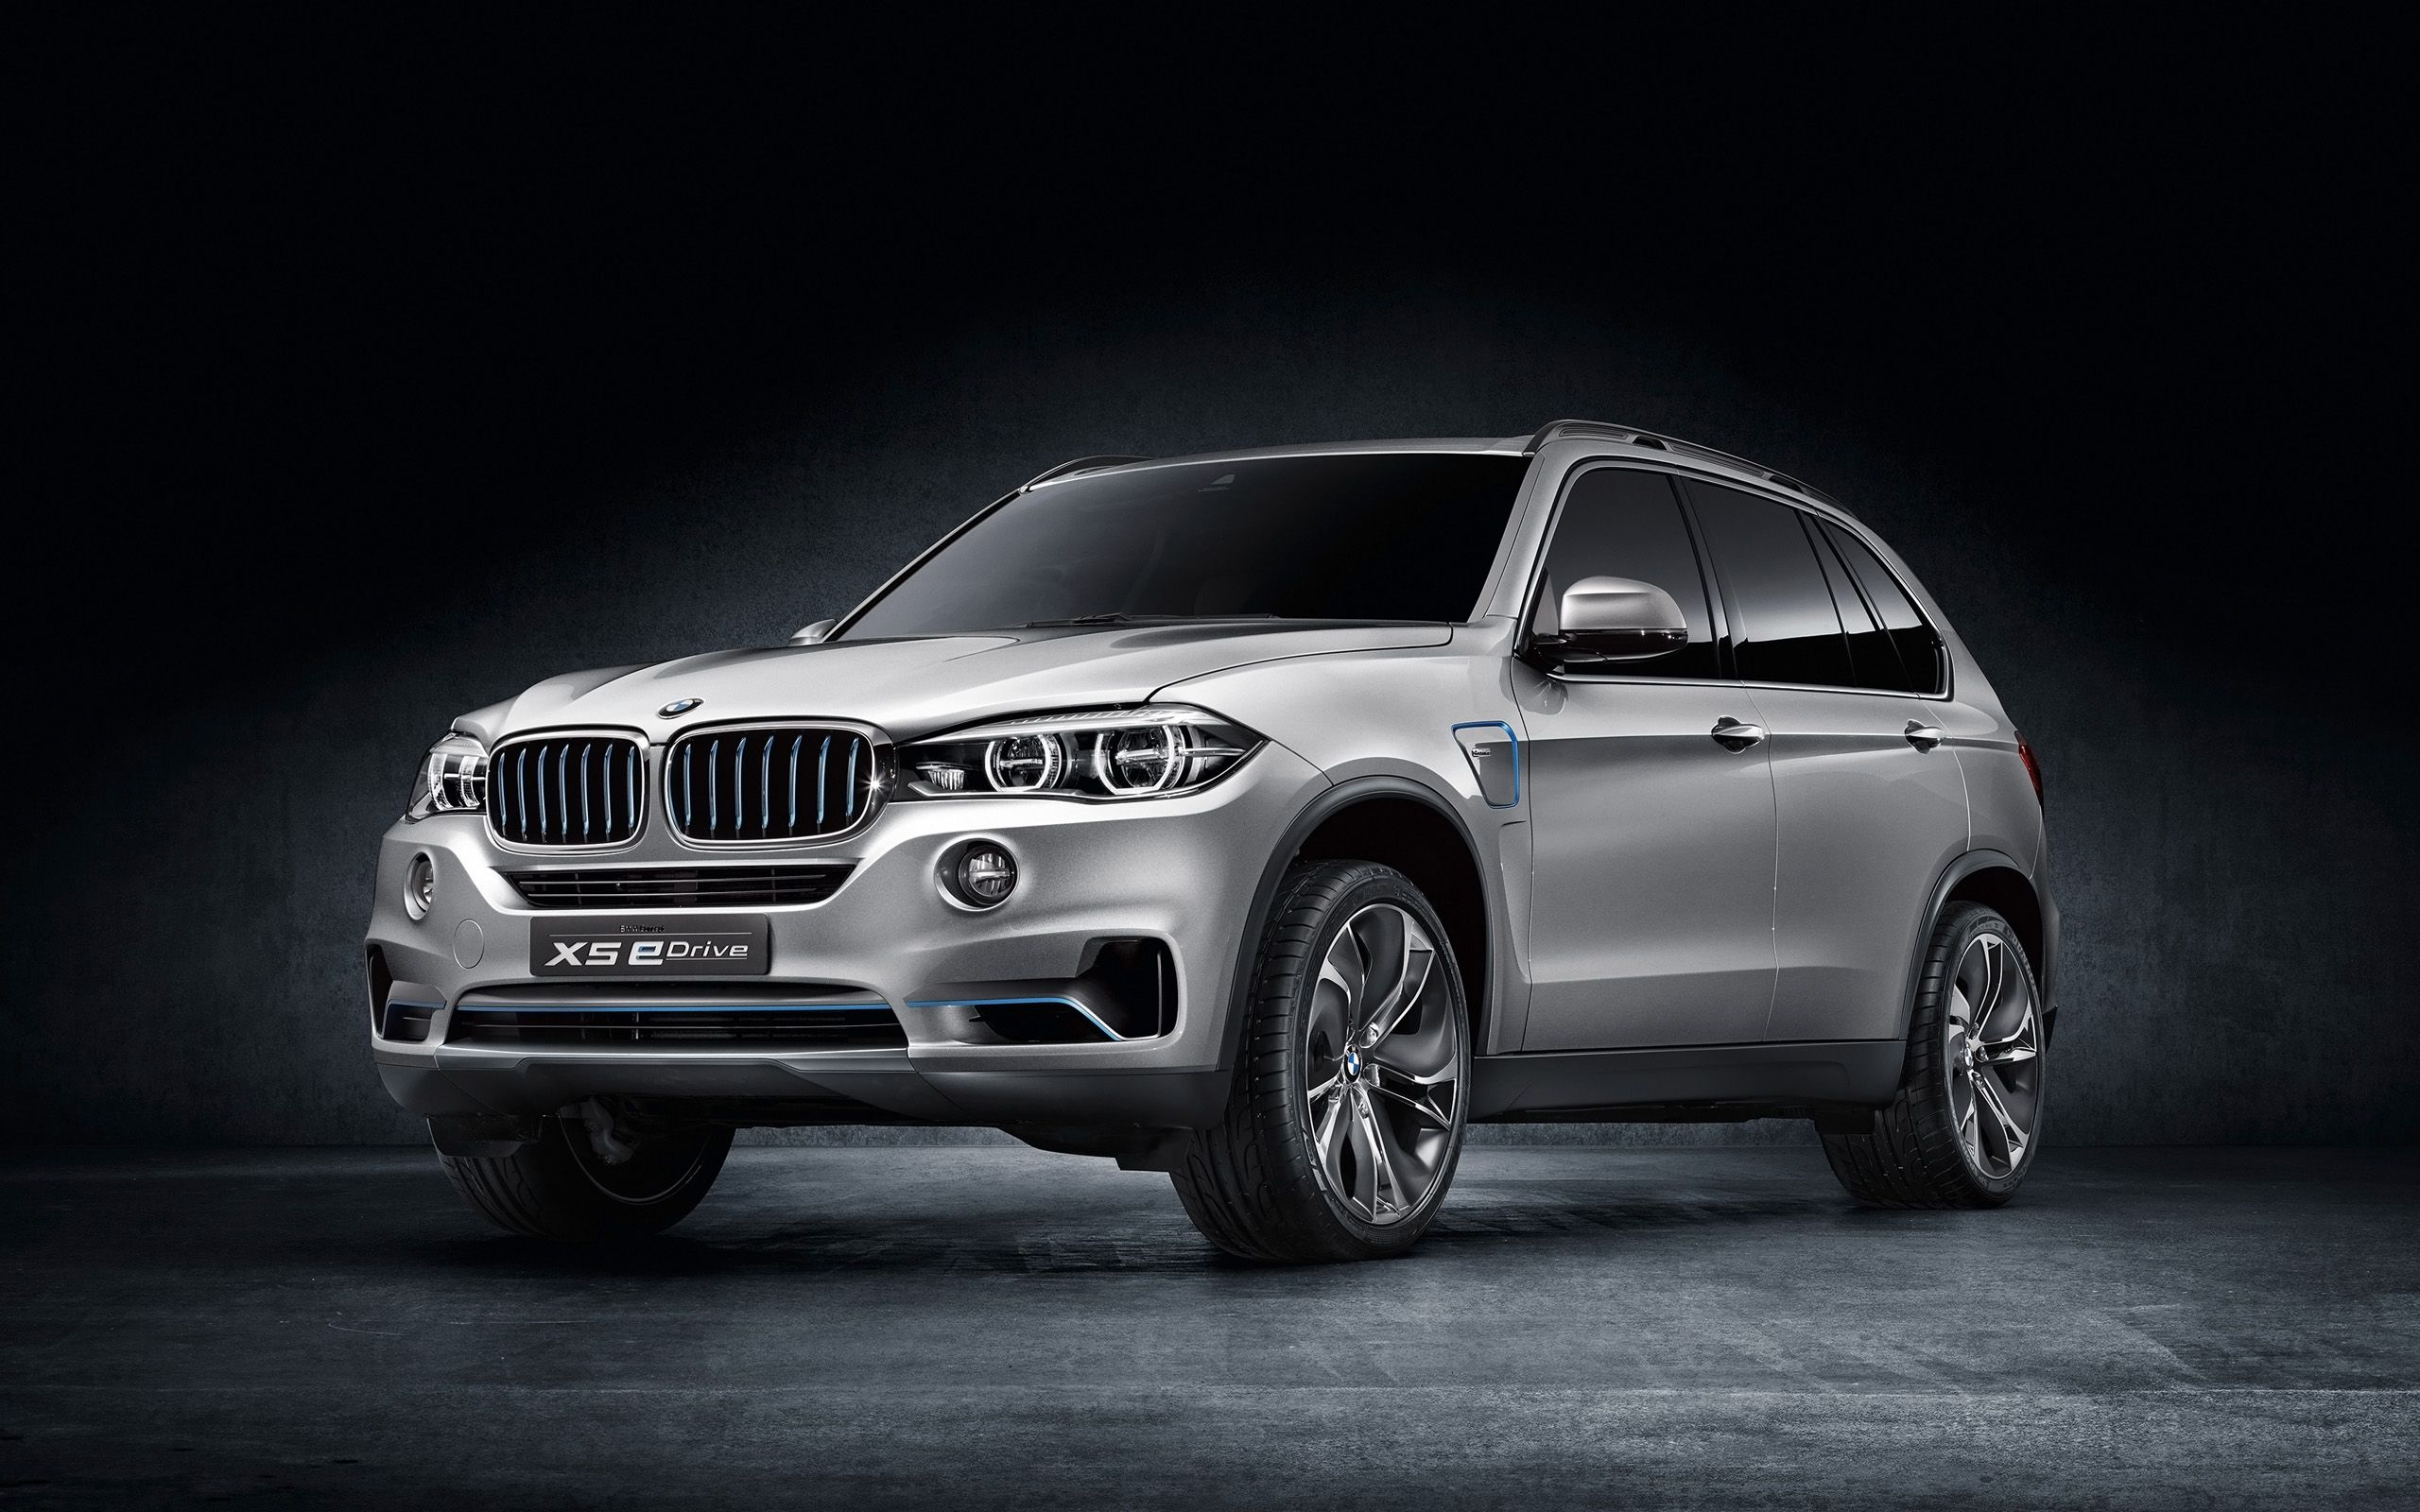 Bmw x5 security plus concept provides luxury through safety frankfurt auto show pinterest bmw x5 bmw and cars